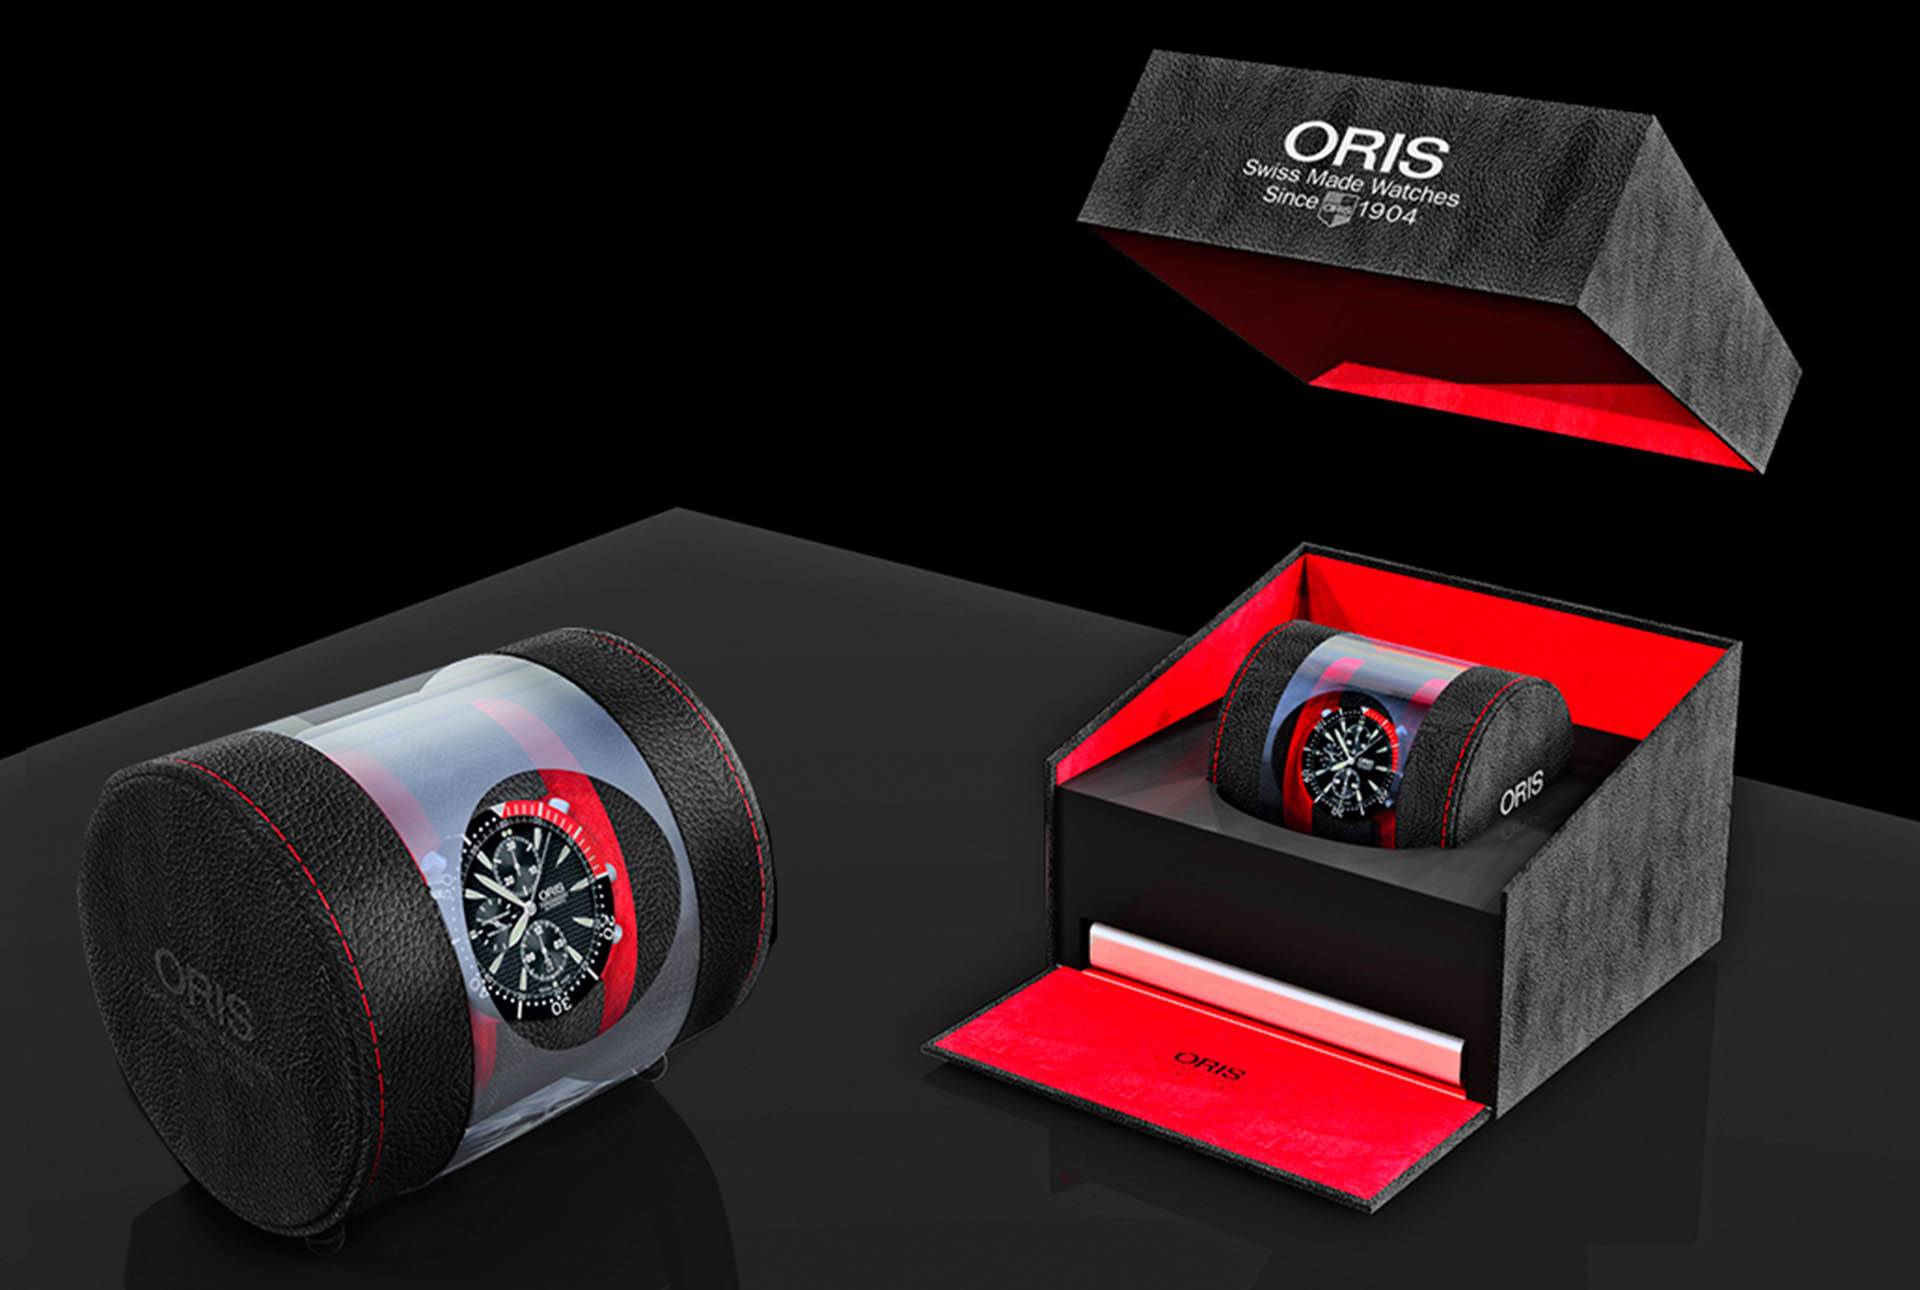 Product design Oris